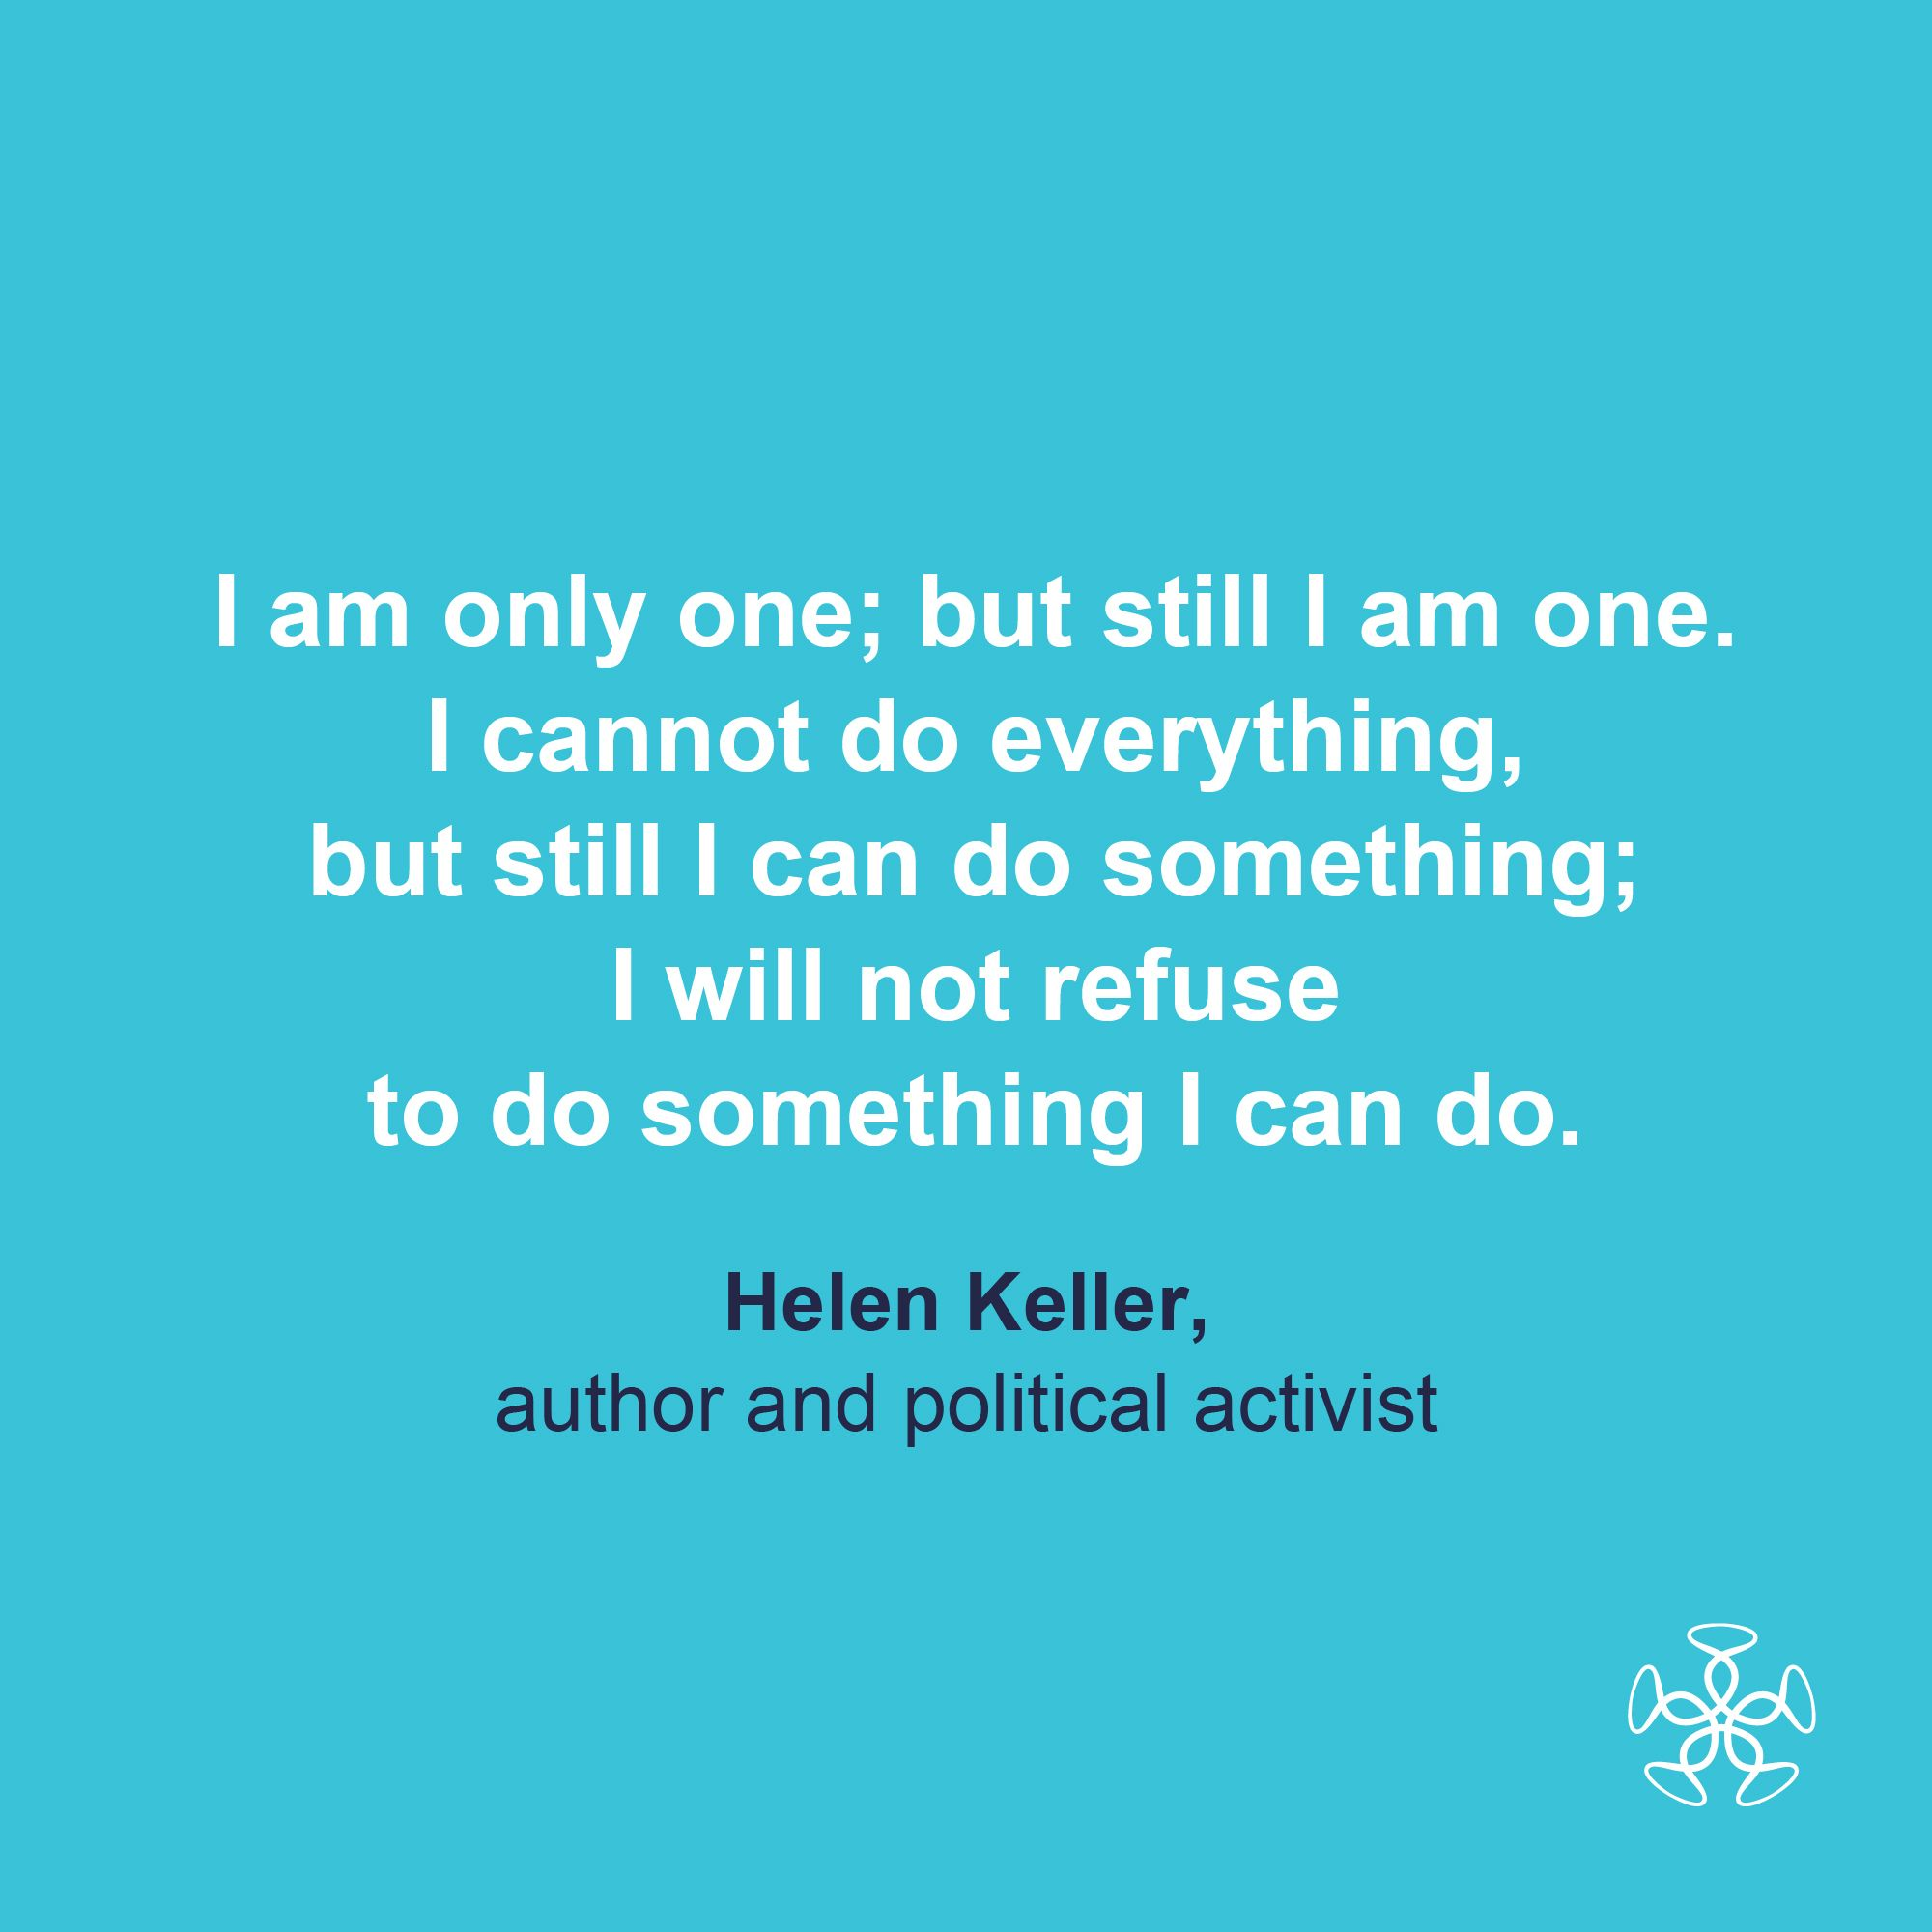 Helen Keller Author And Political Activist